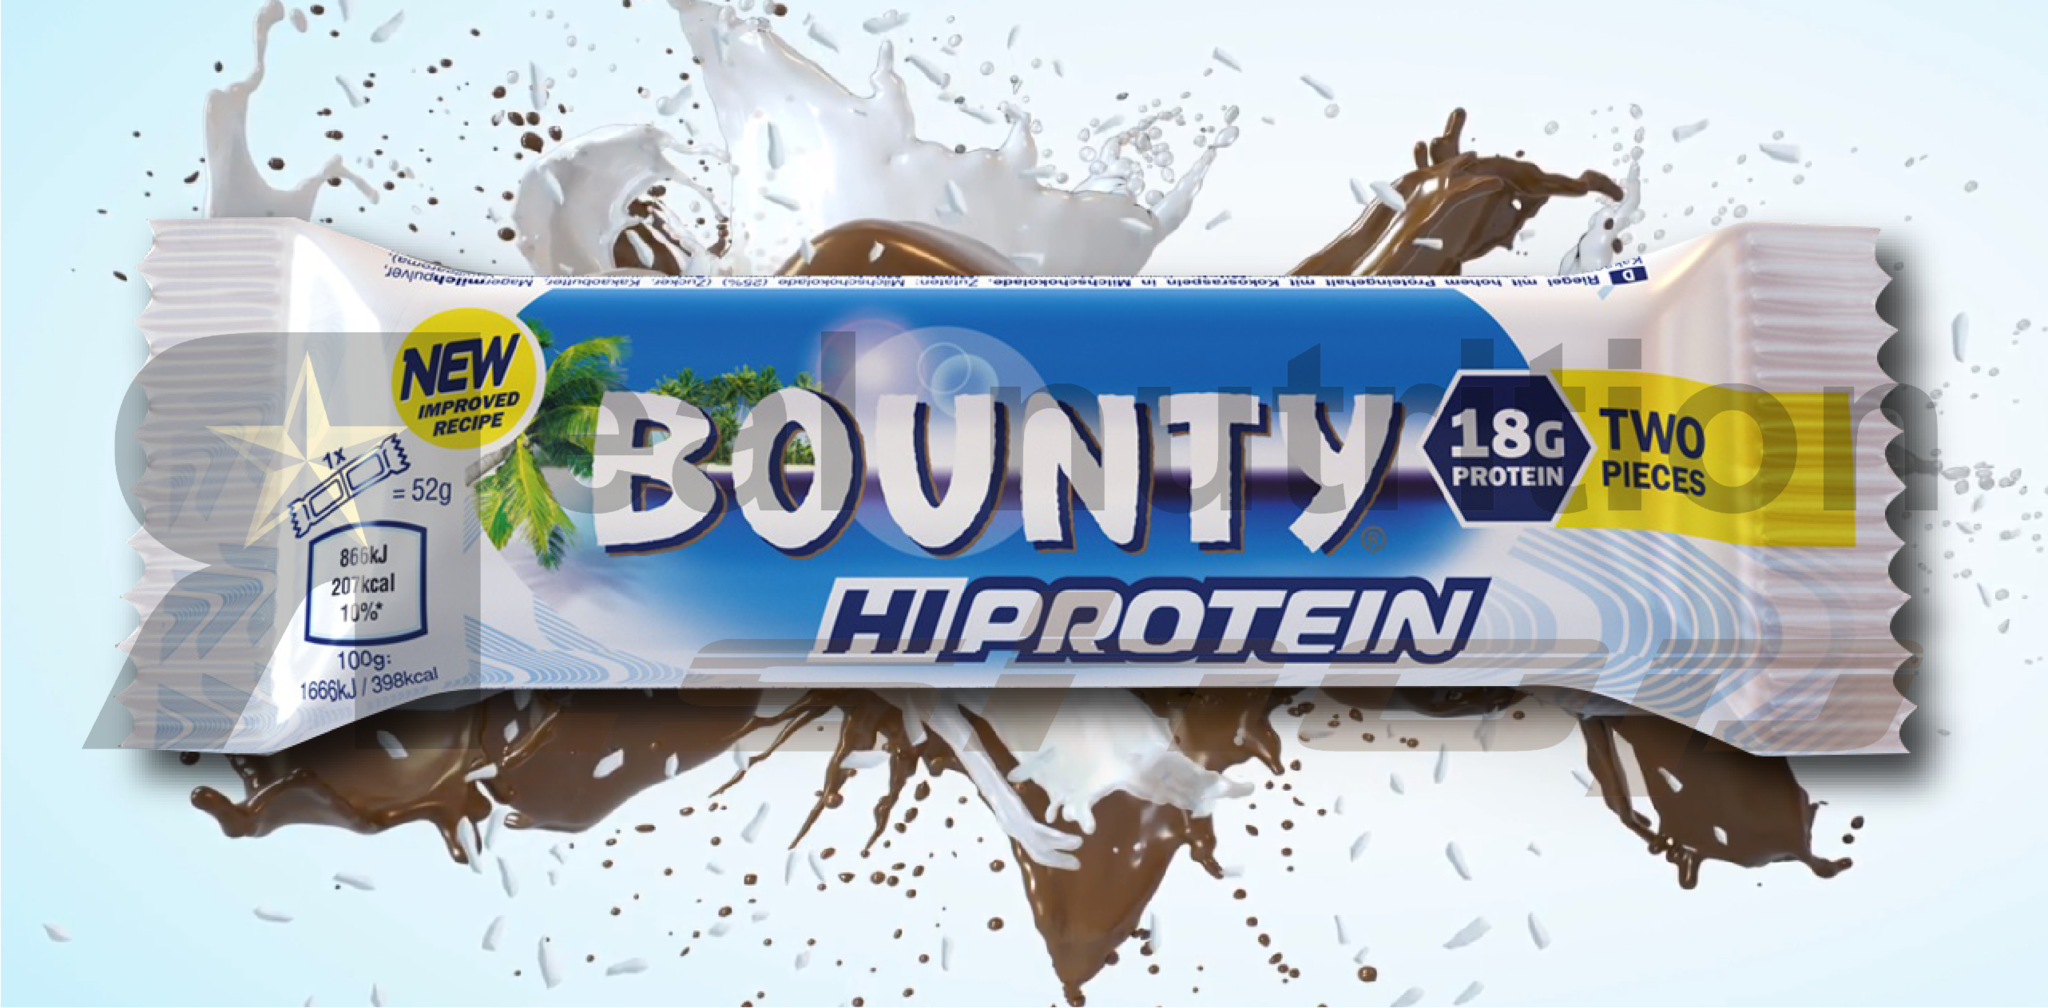 Real Nutrition Shop - Snickers Hi Protein Witte Chocolade